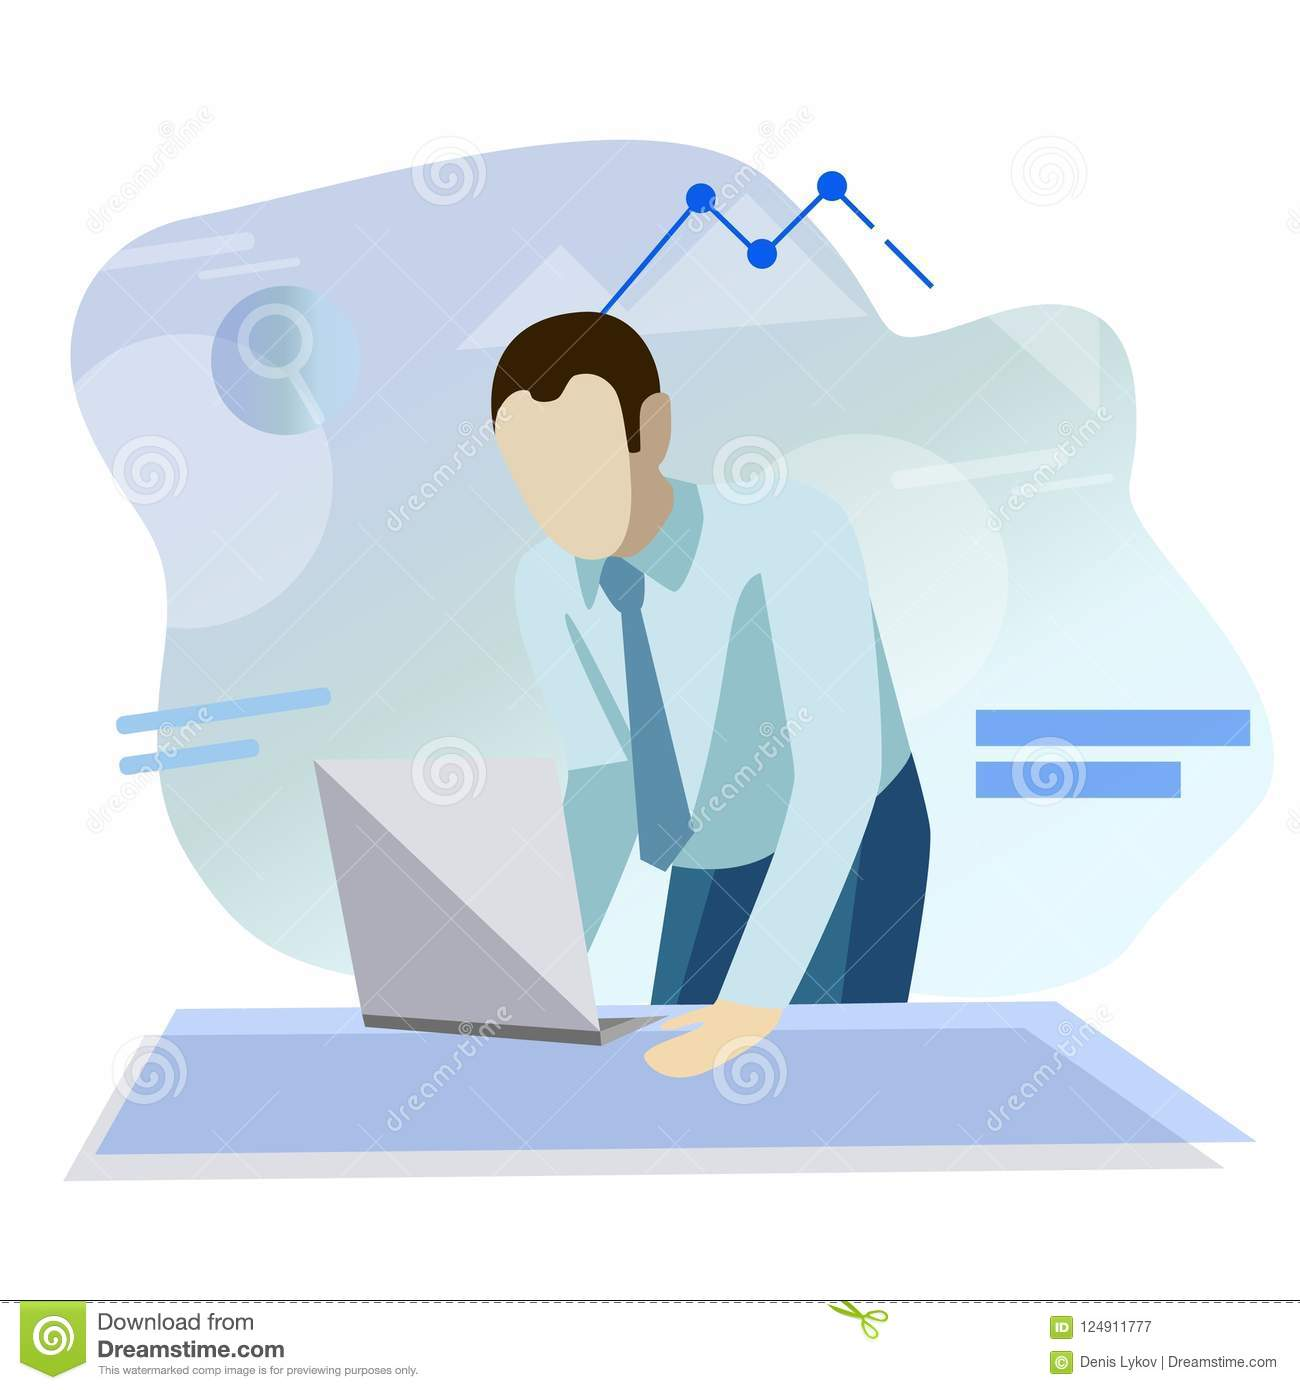 Businessman. Office worker. Flat simple design. Vector. Office workplace with table